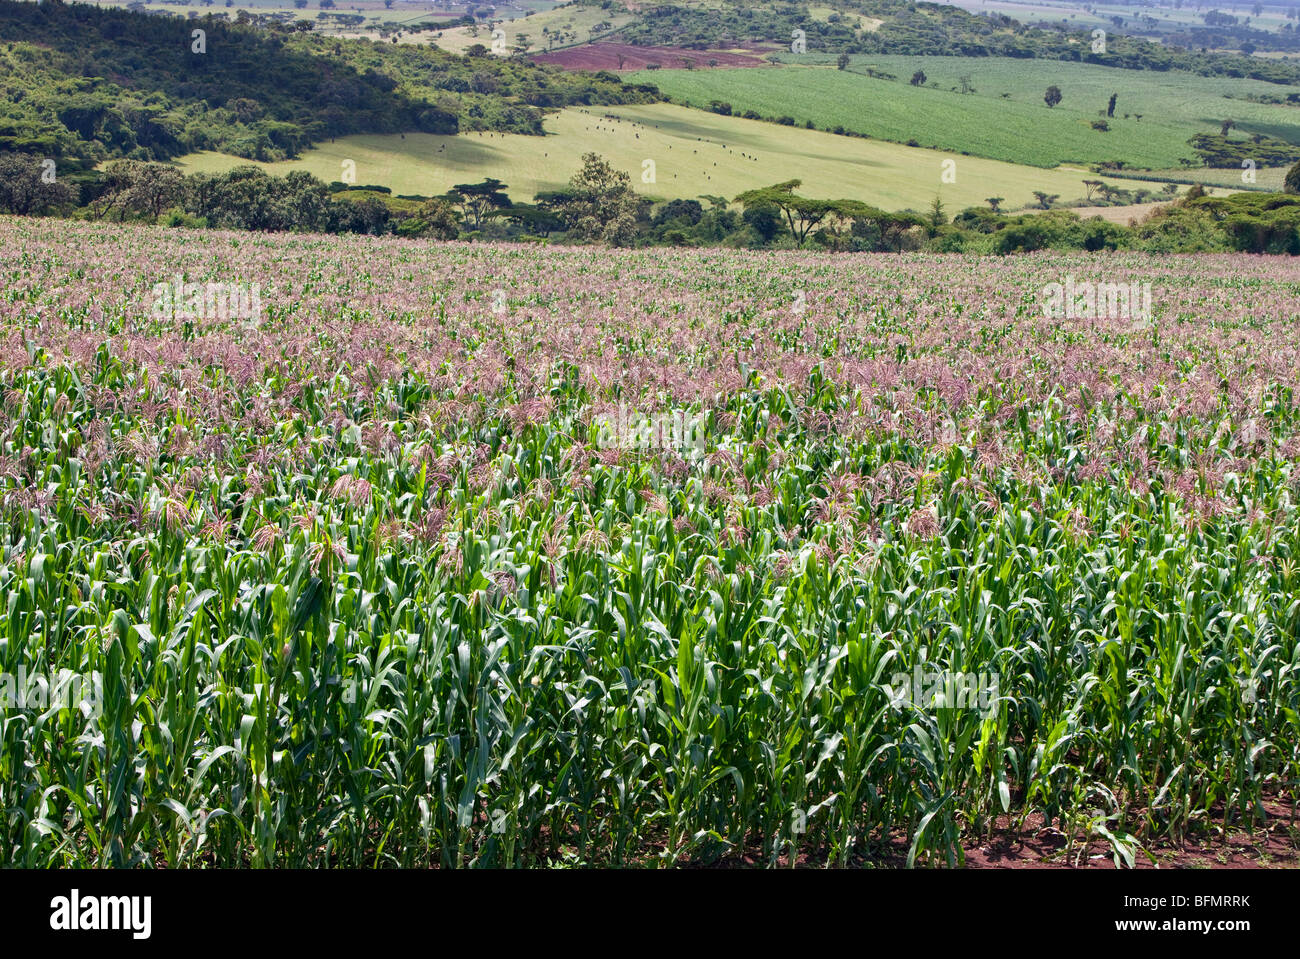 Kenya. A healthy crop of white maize growing at Endebess.  Maize is the staple food of all Kenyans. - Stock Image